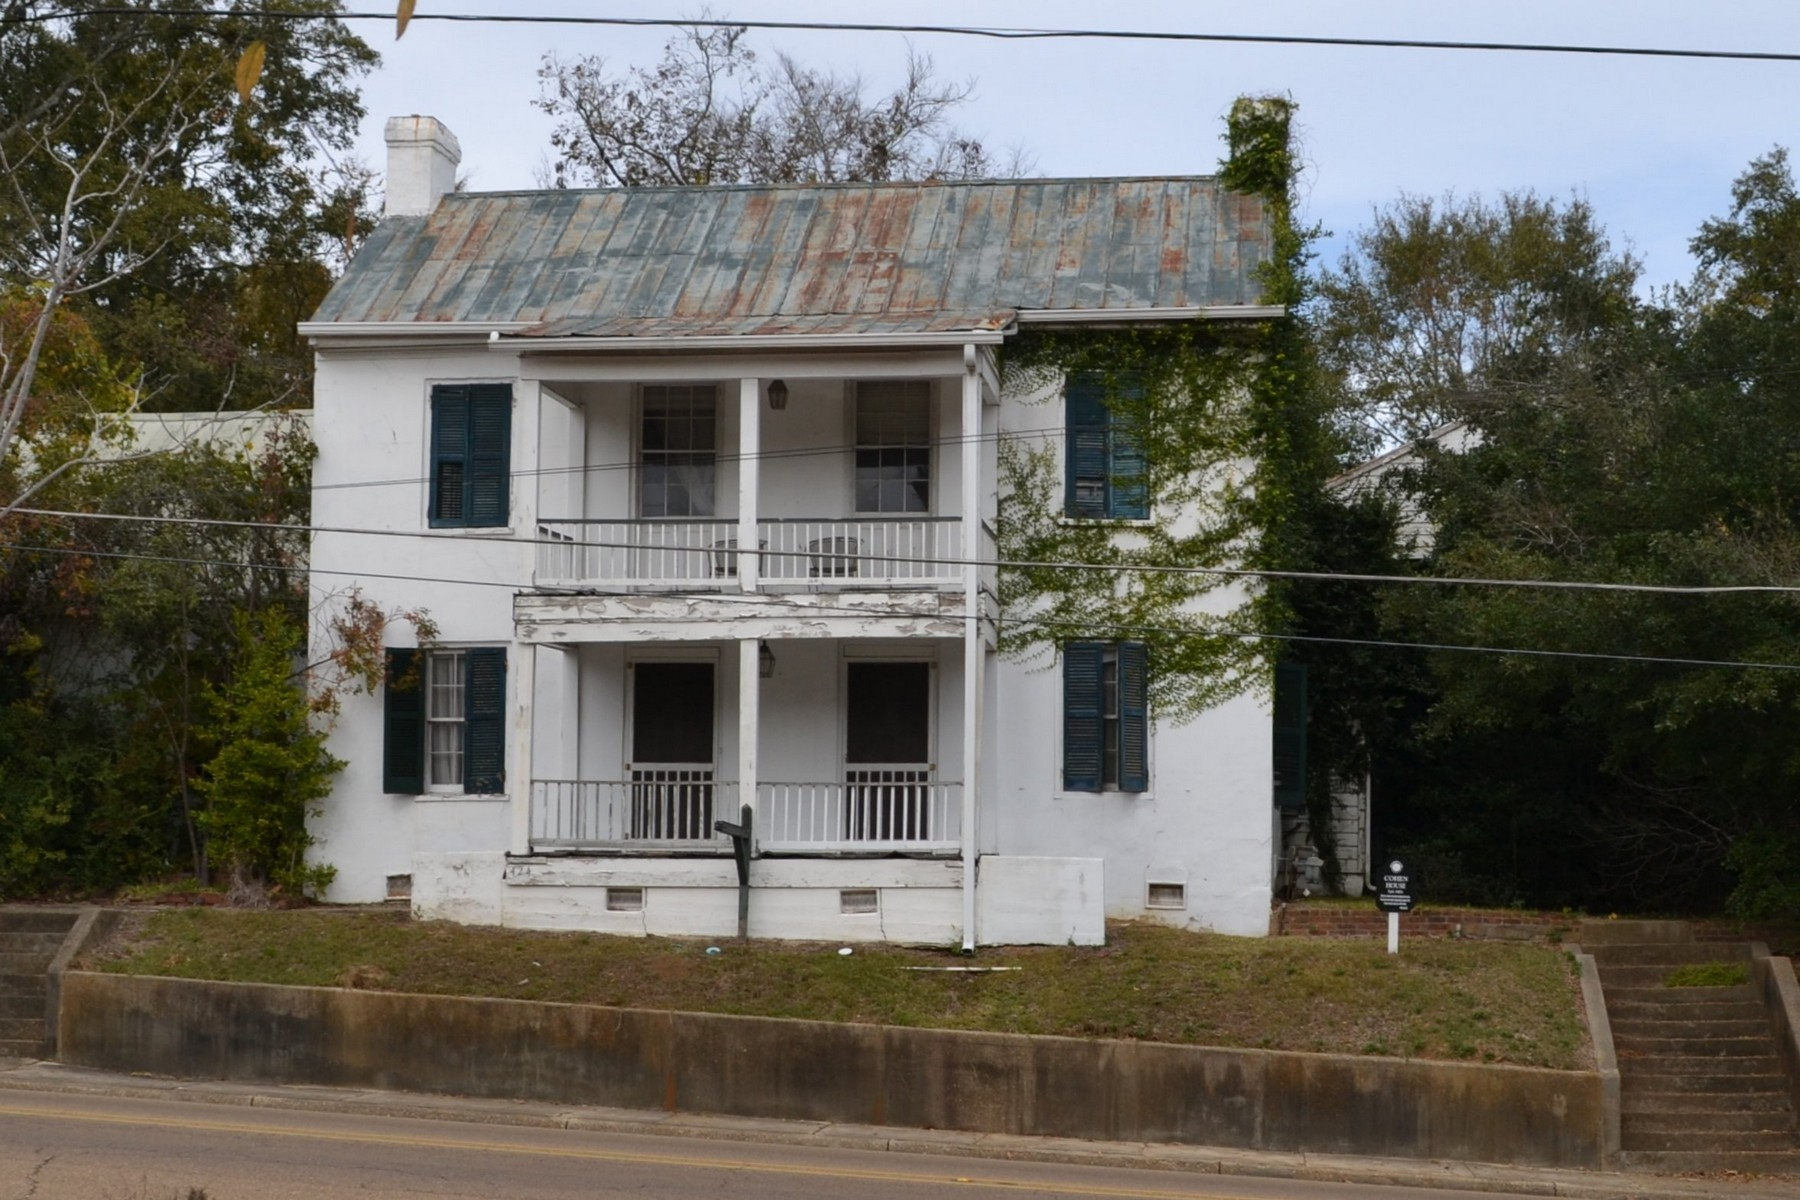 Single Family Home for Sale at Cohen House 424 Main St Woodville, Mississippi 39669 United States